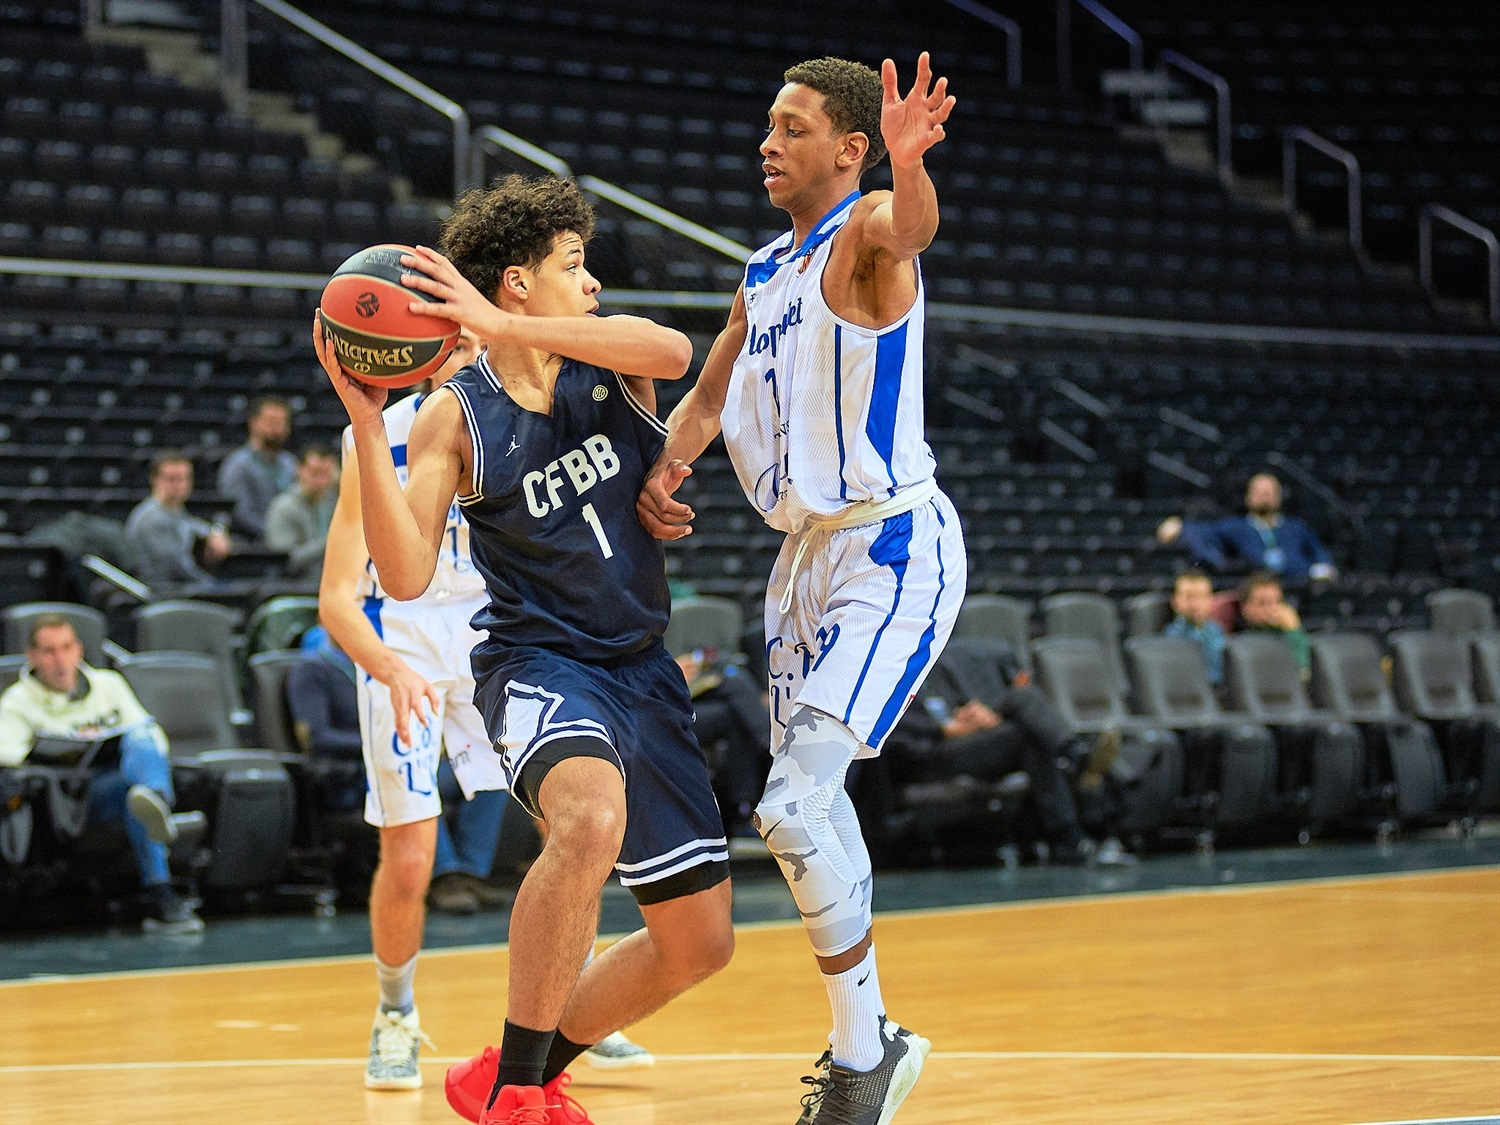 Timothe Crusol - U18 CFBB Paris (photo Zalgiris) - JT18